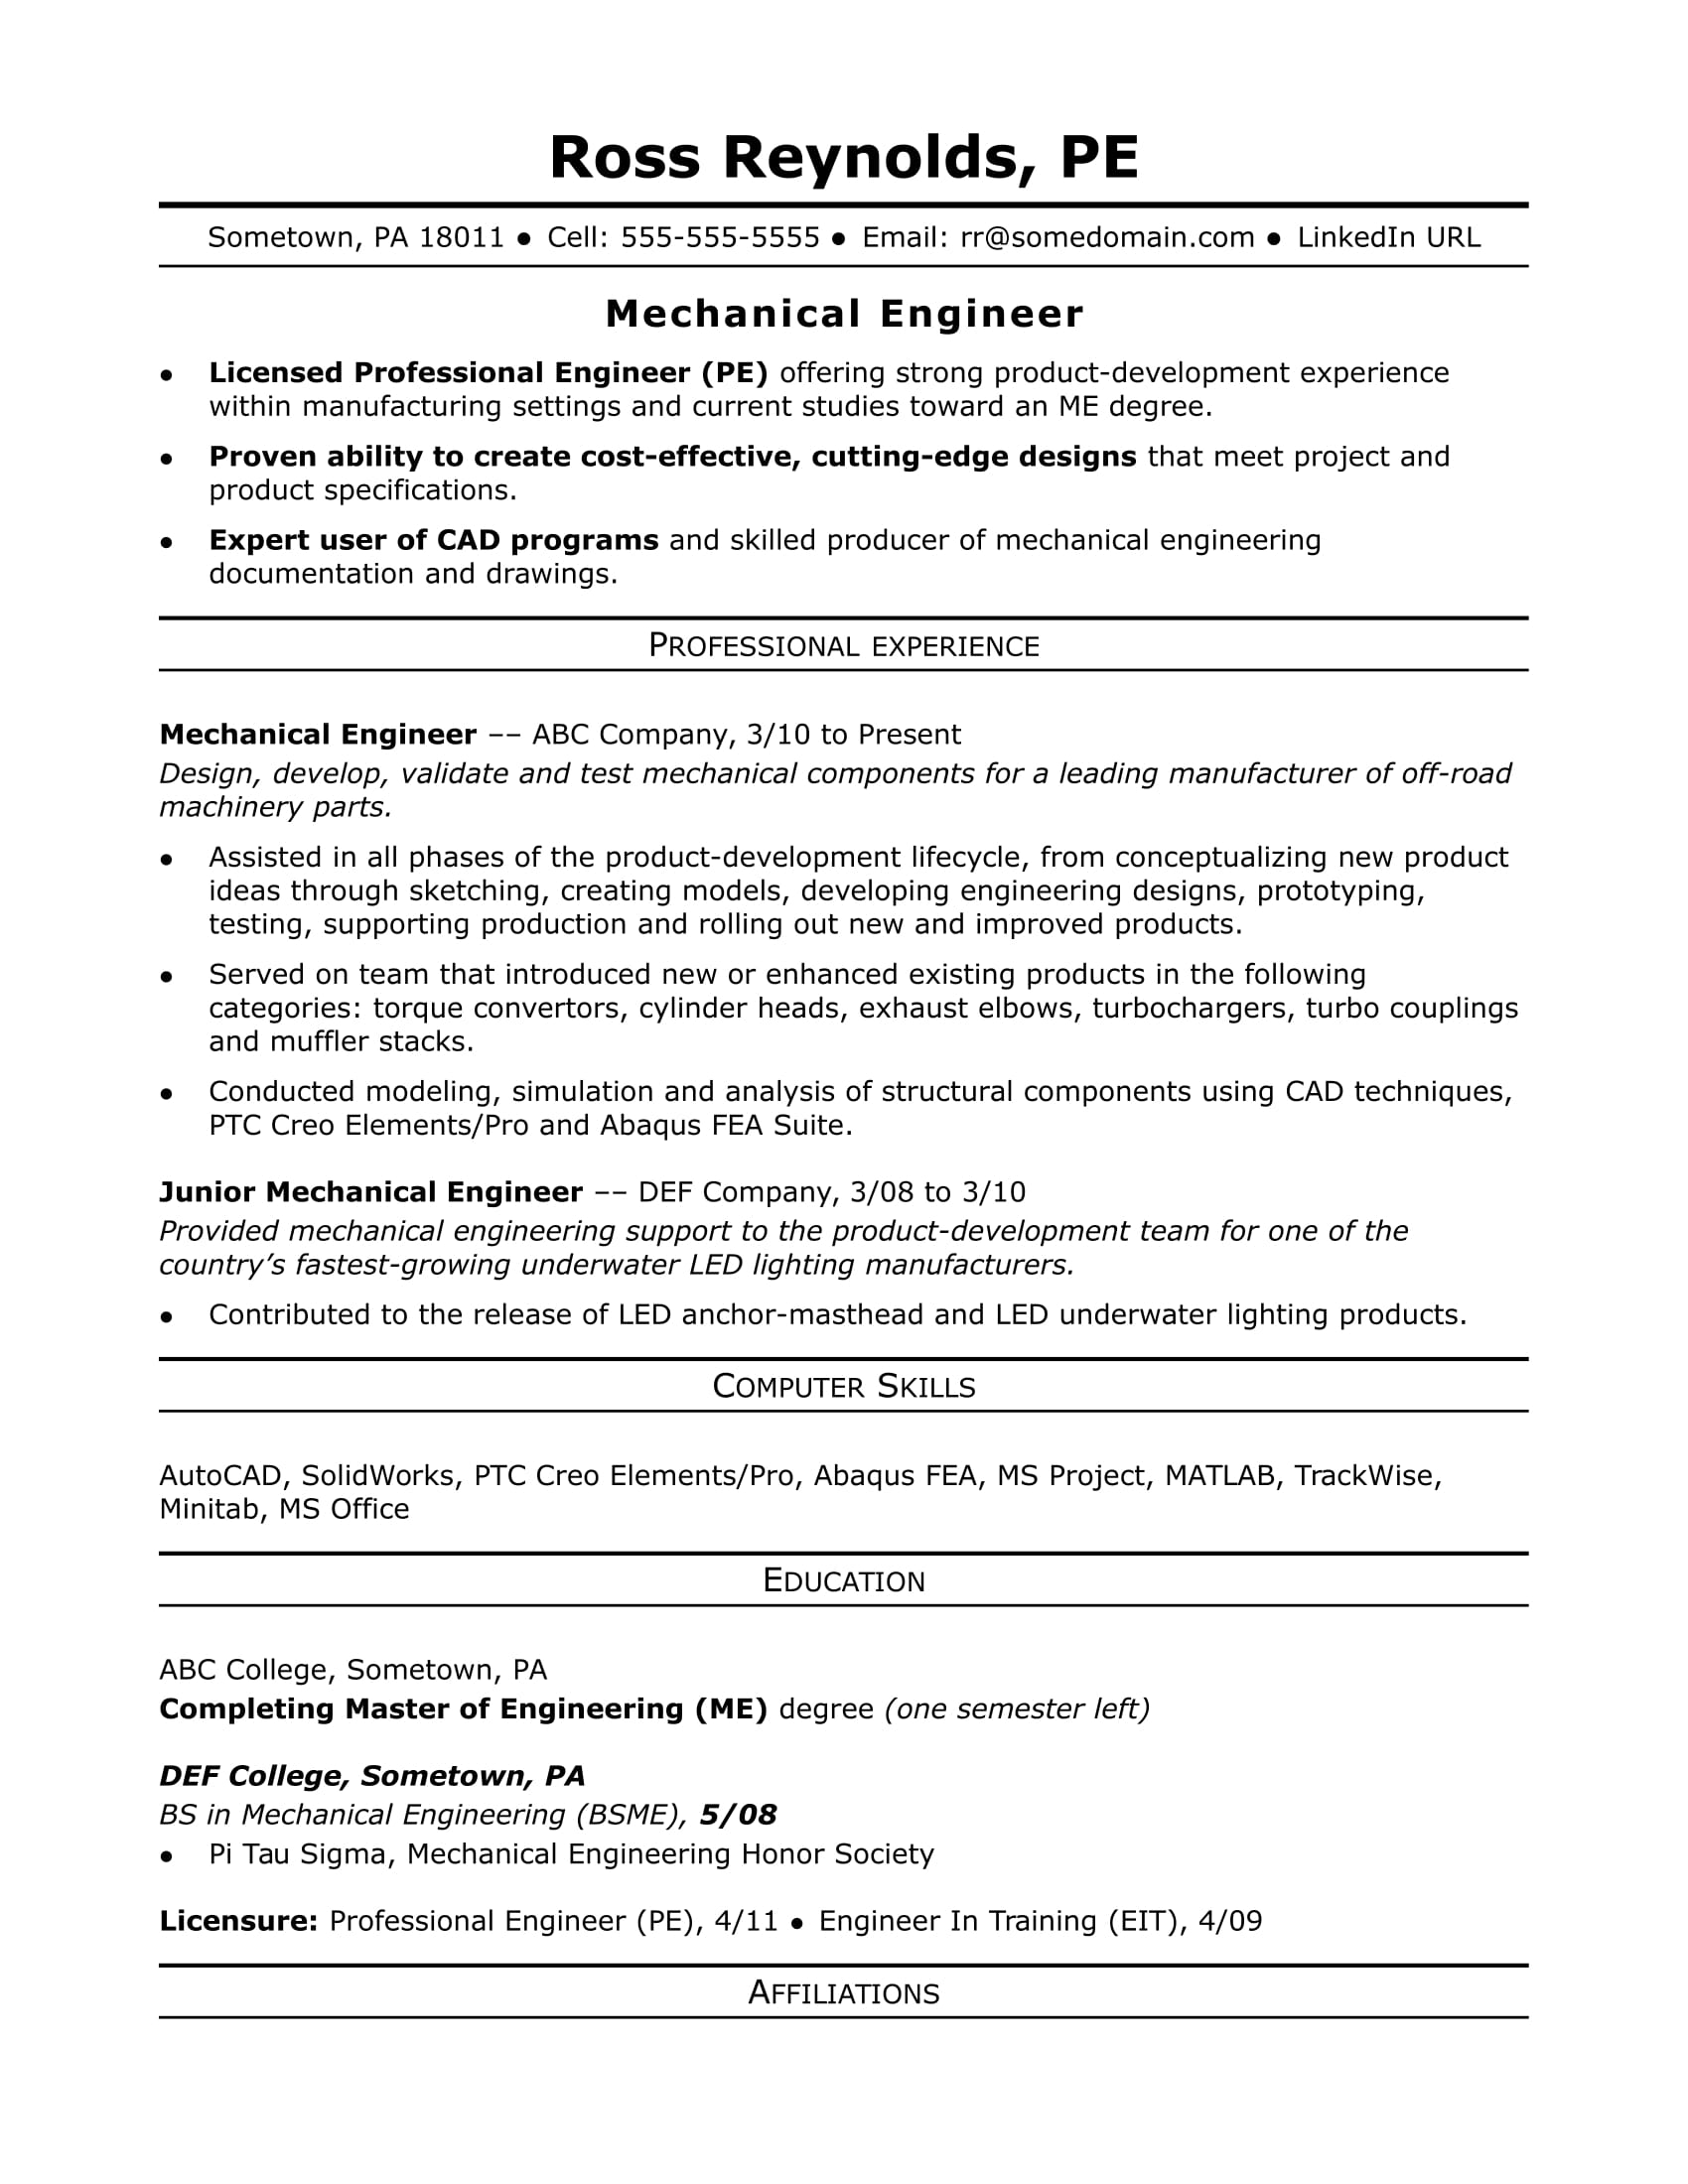 sample resume for a midlevel mechanical engineer - Monster Sample Resume